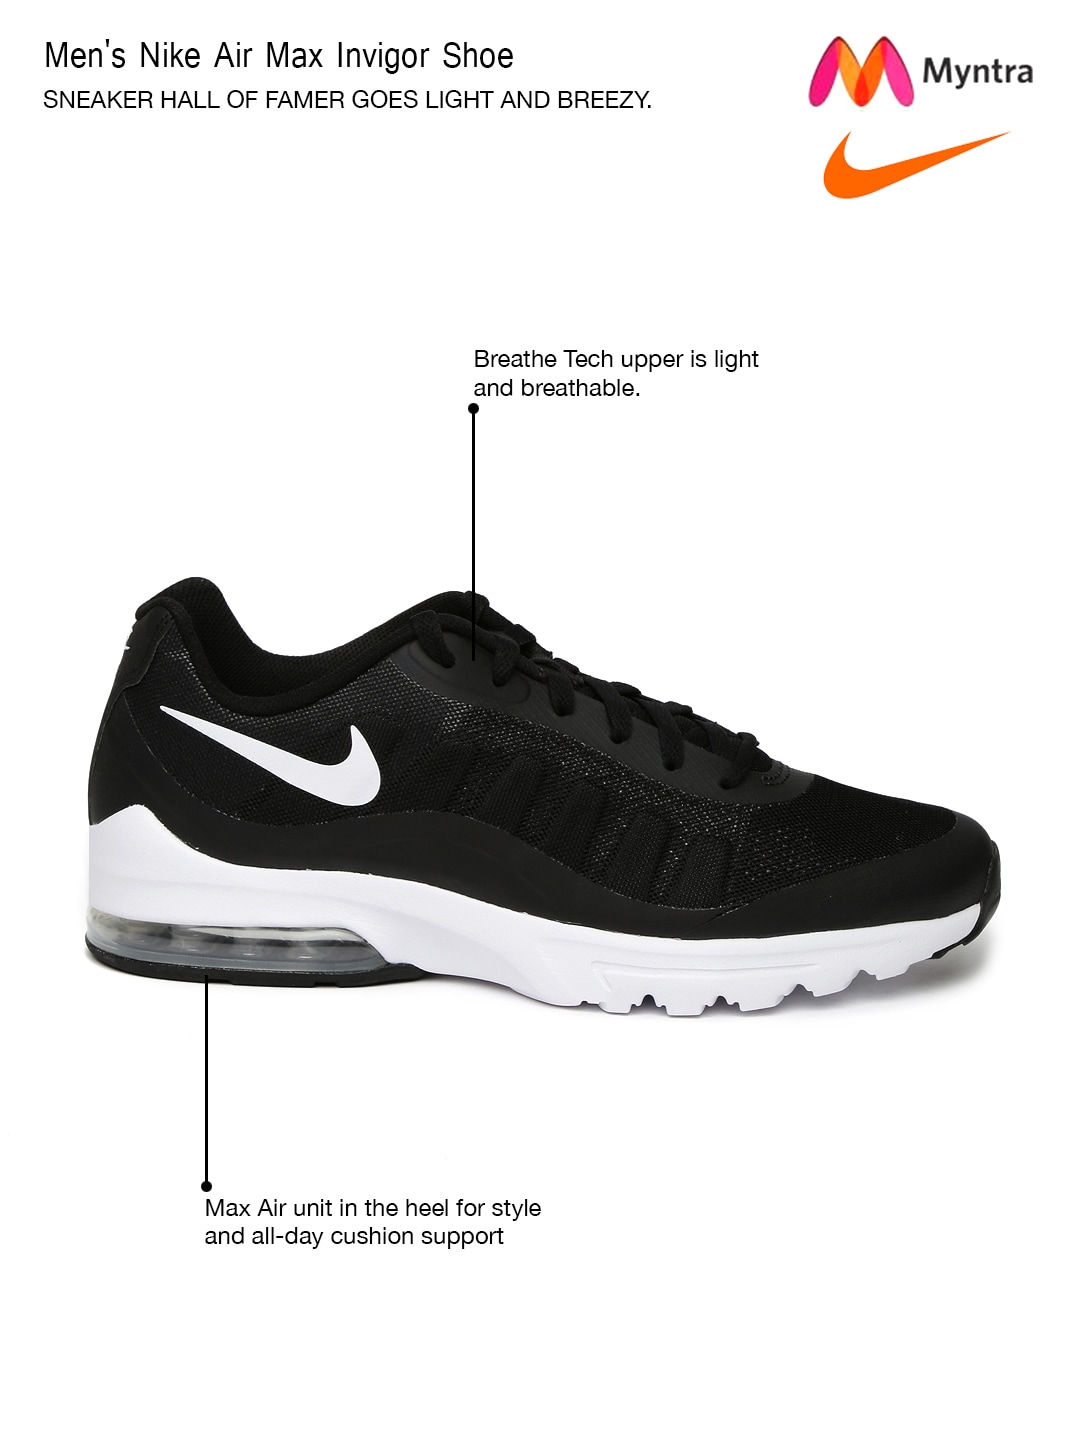 ... Sports Shoes @ Myntra.com Nike Air Max - Buy Nike Air Max Shoes, Bags,  Sneakers in India Nike Men Black ...